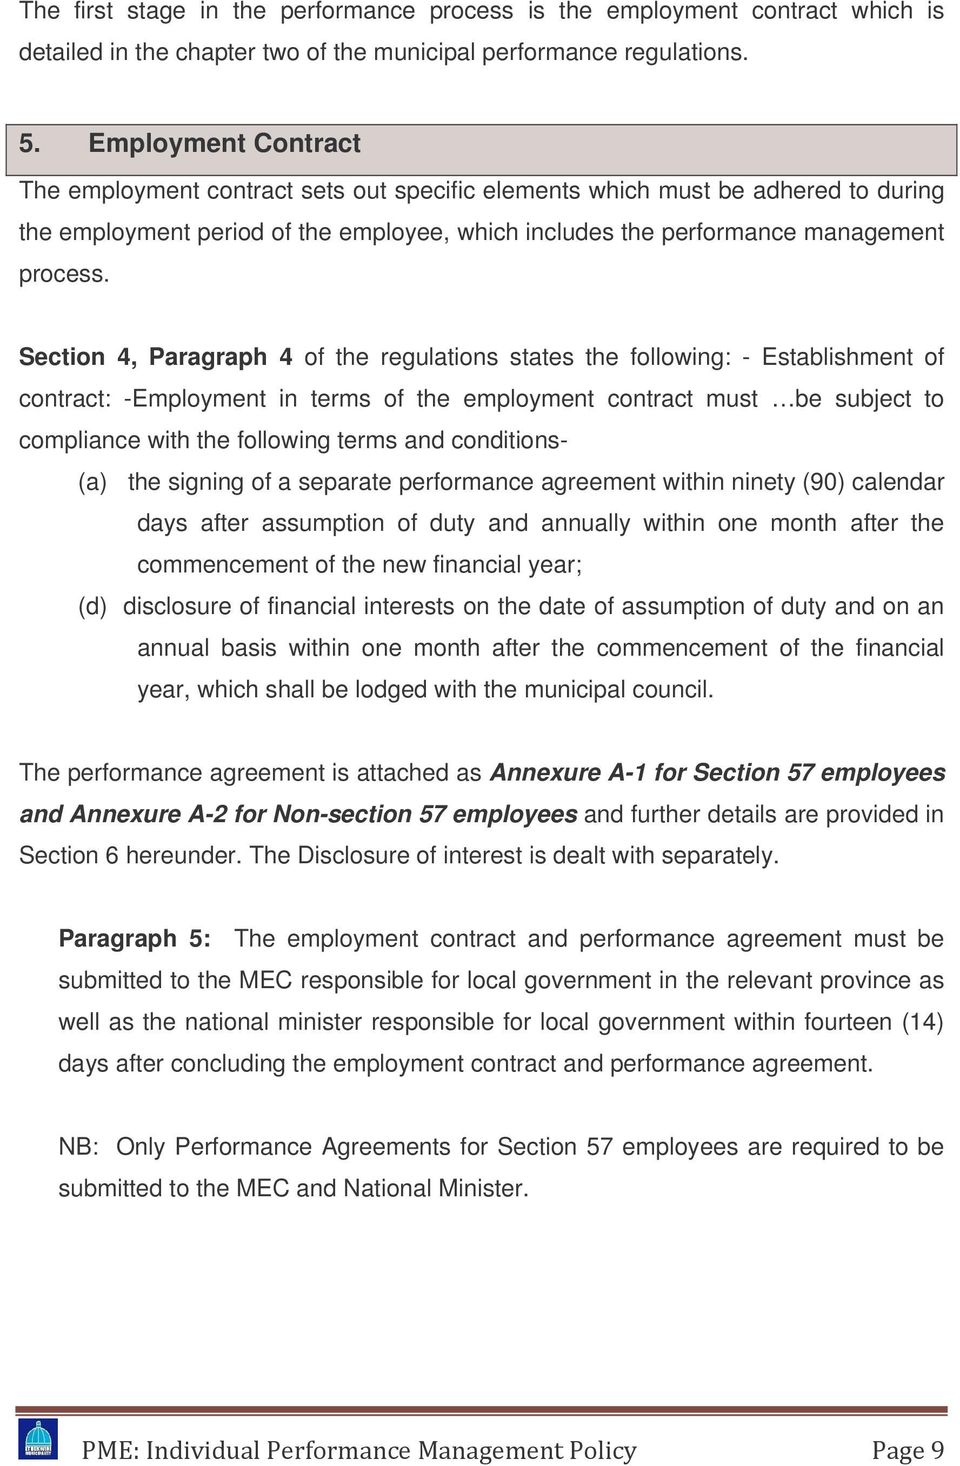 Section 4, Paragraph 4 of the regulations states the following: - Establishment of contract: -Employment in terms of the employment contract must be subject to compliance with the following terms and